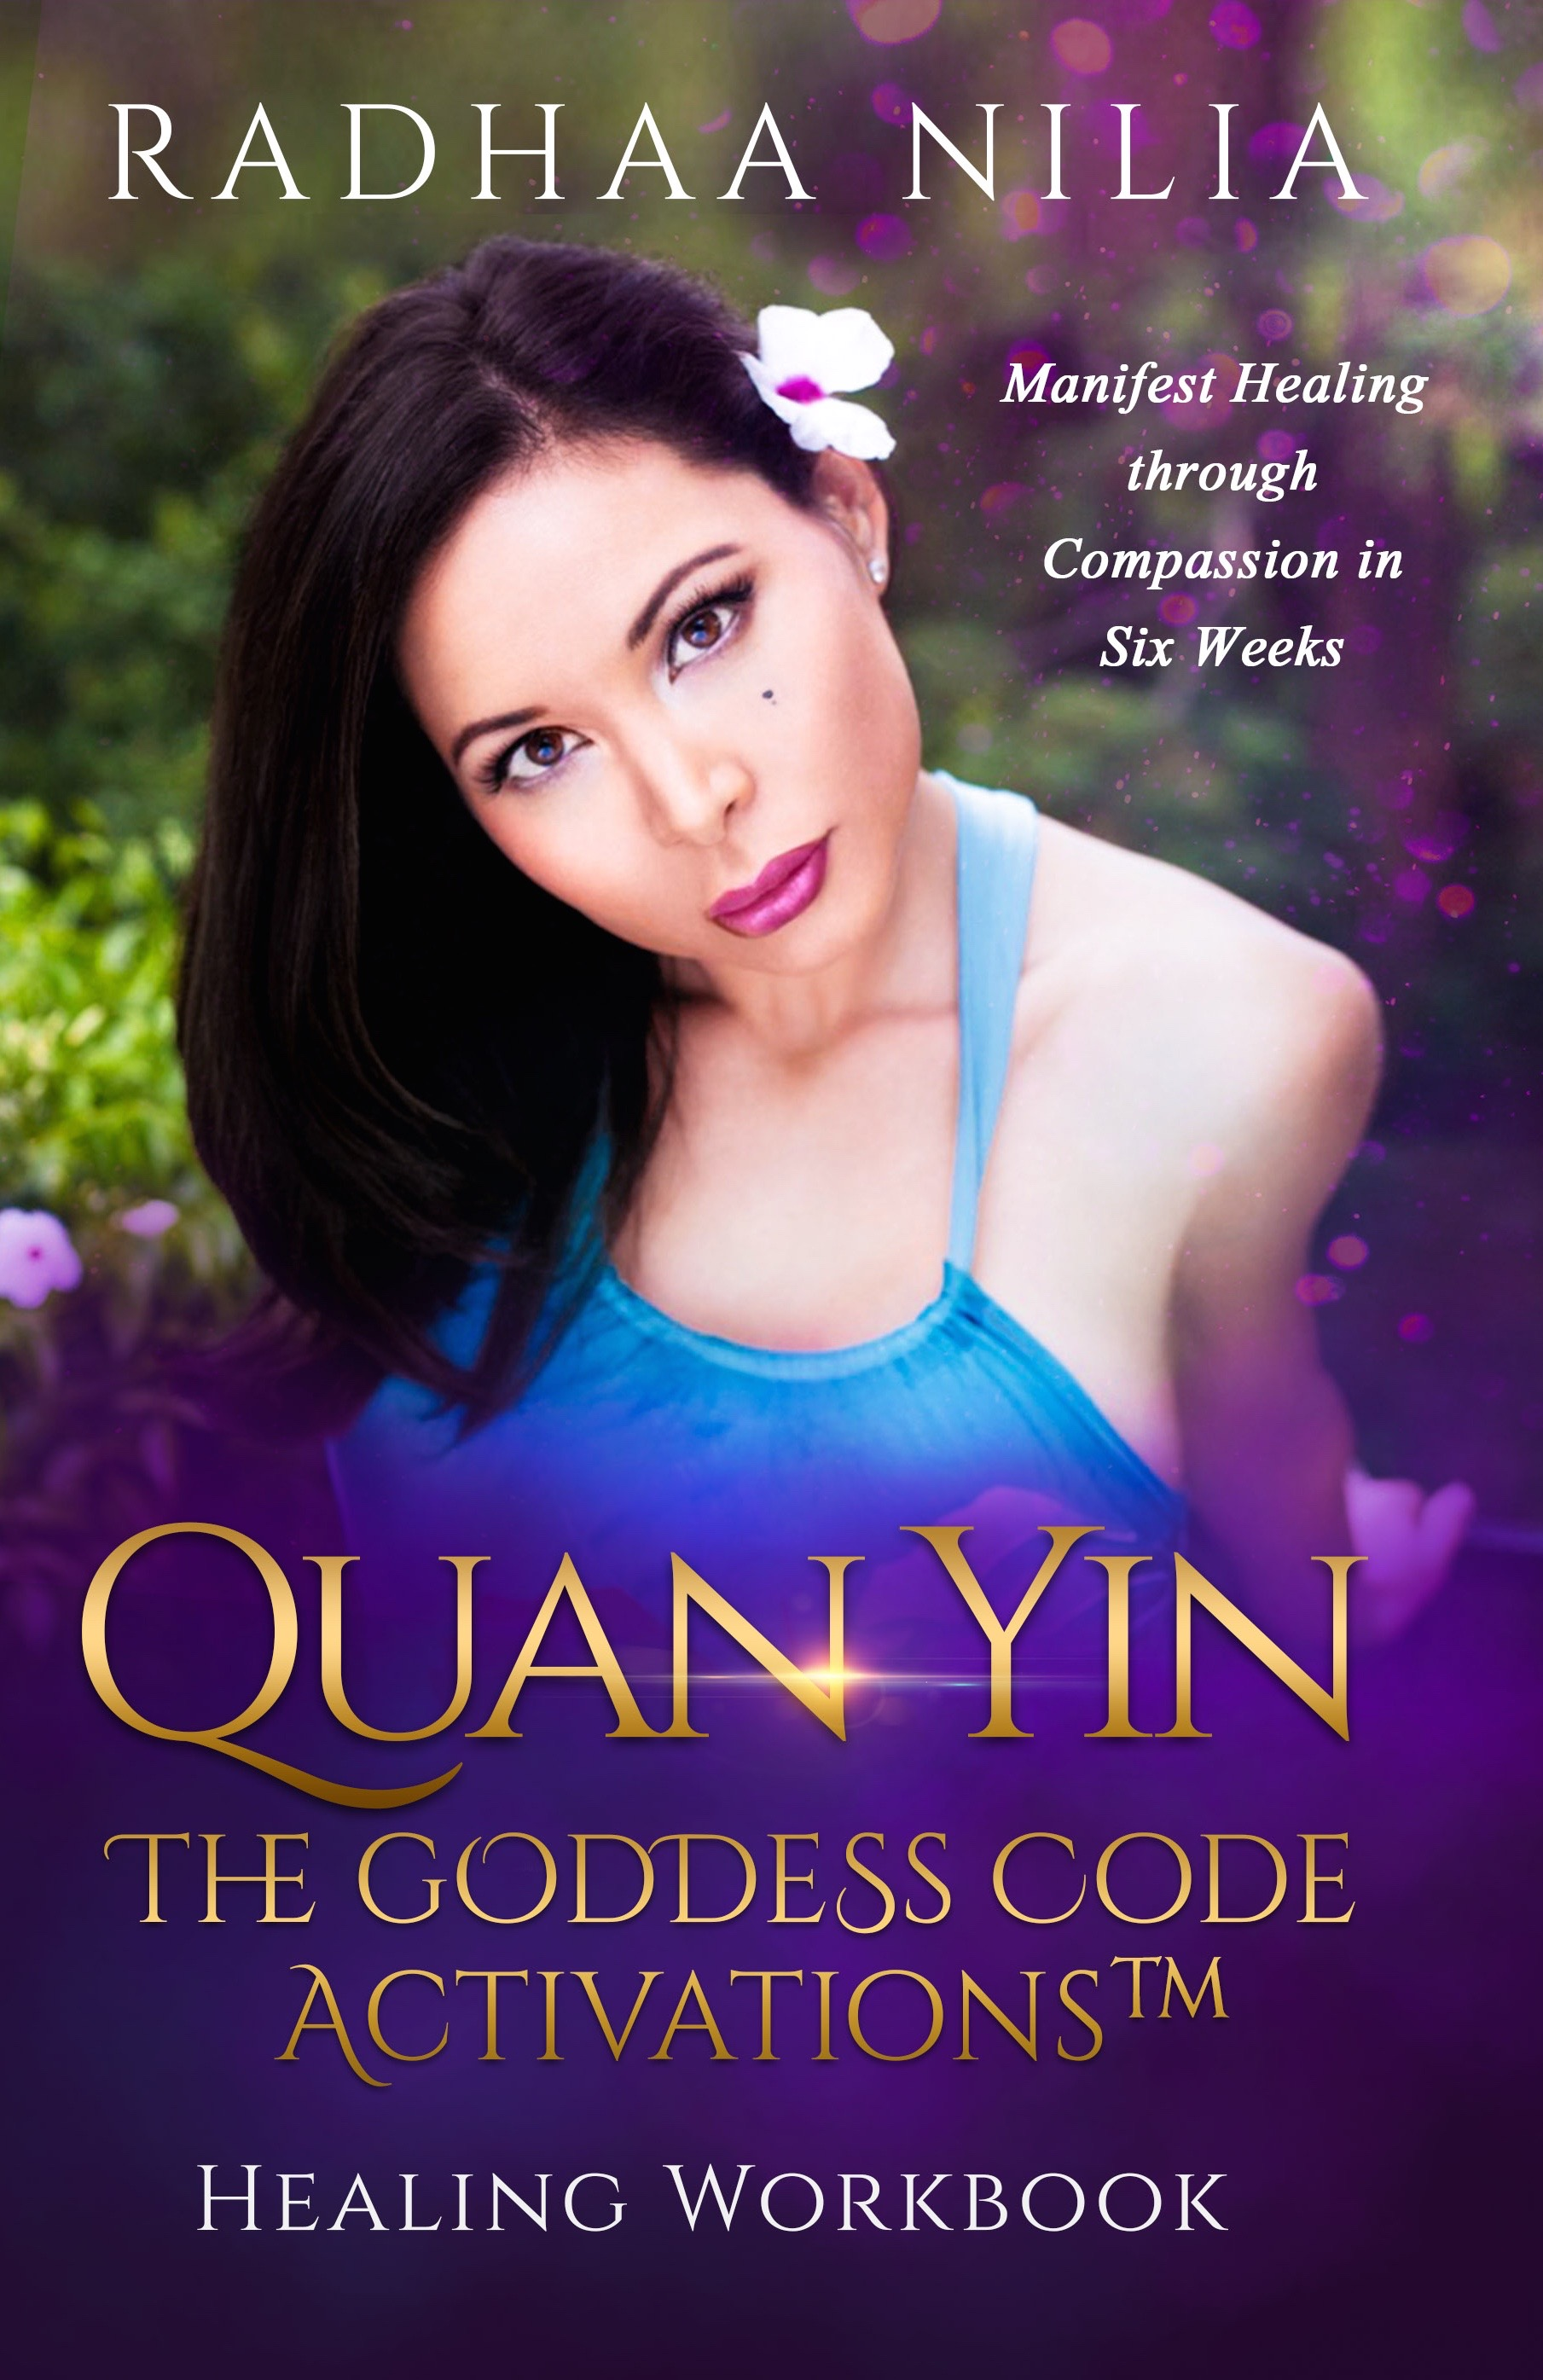 Radhaa Nilia - Quan Yin Goddess Code Activations -Book Cover (1).jpg